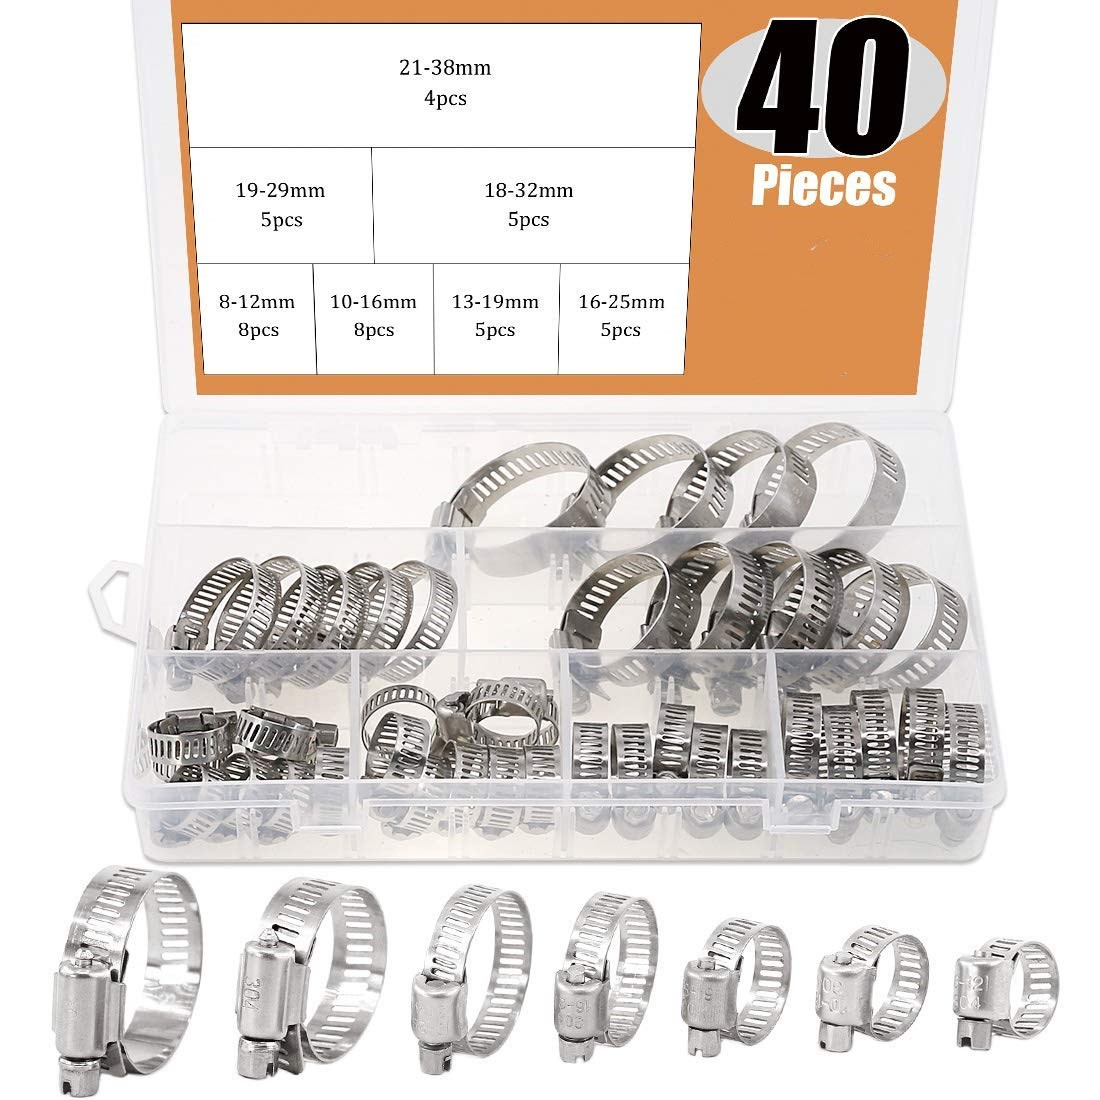 Hose Jubilee Clips Clamps Assortment Set Clip Kit Pack Assorted Sizes 26 Pc